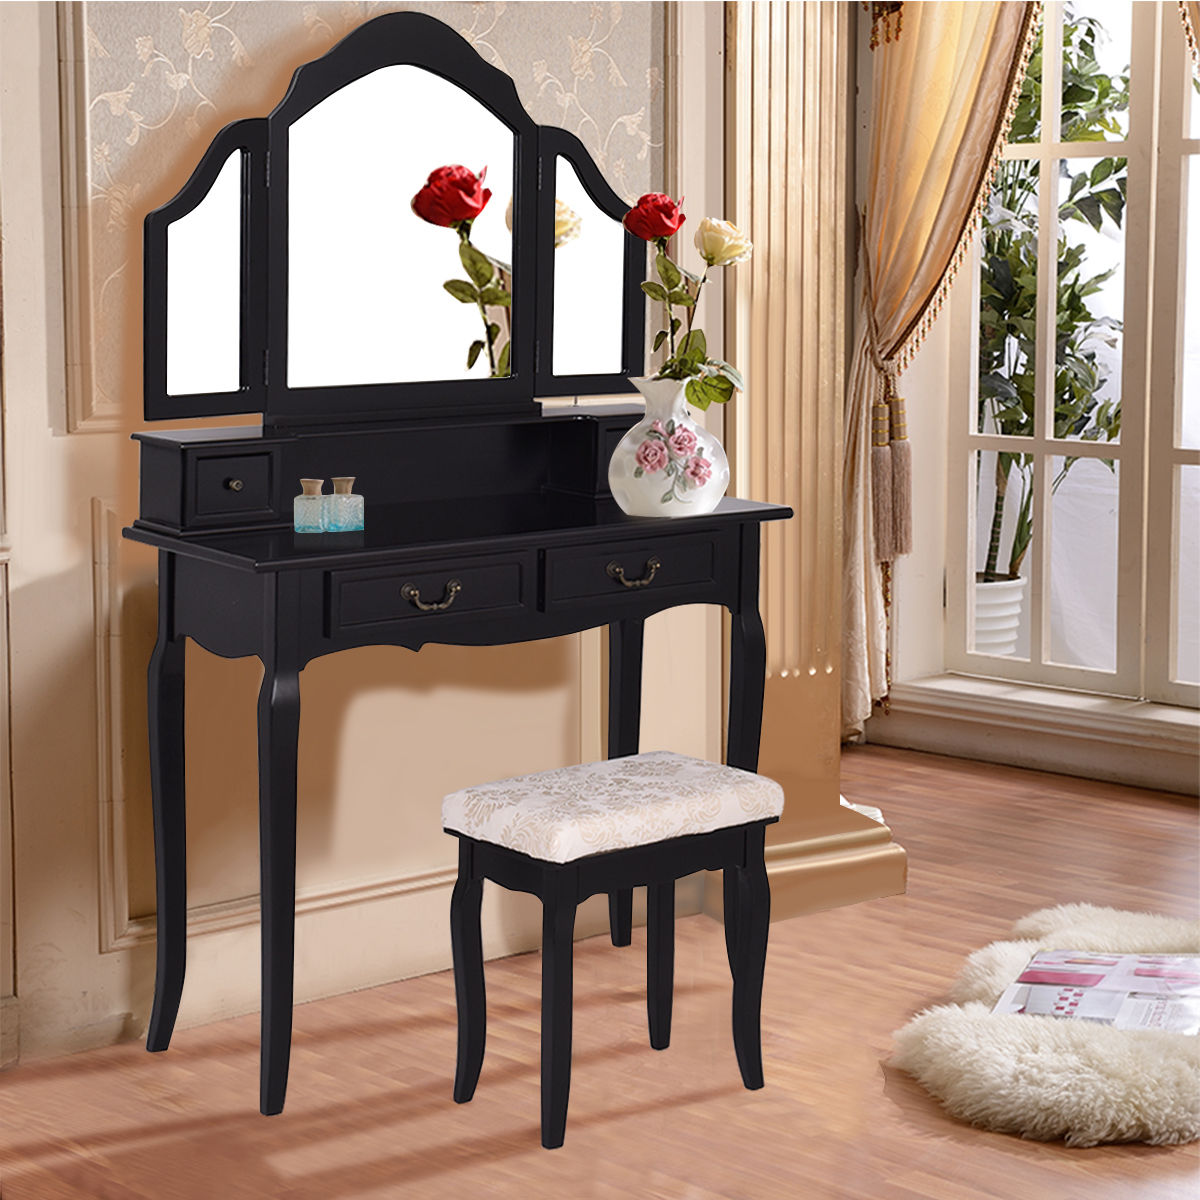 bedroom vanity with drawers costway black tri folding mirror vanity makeup table set 14447